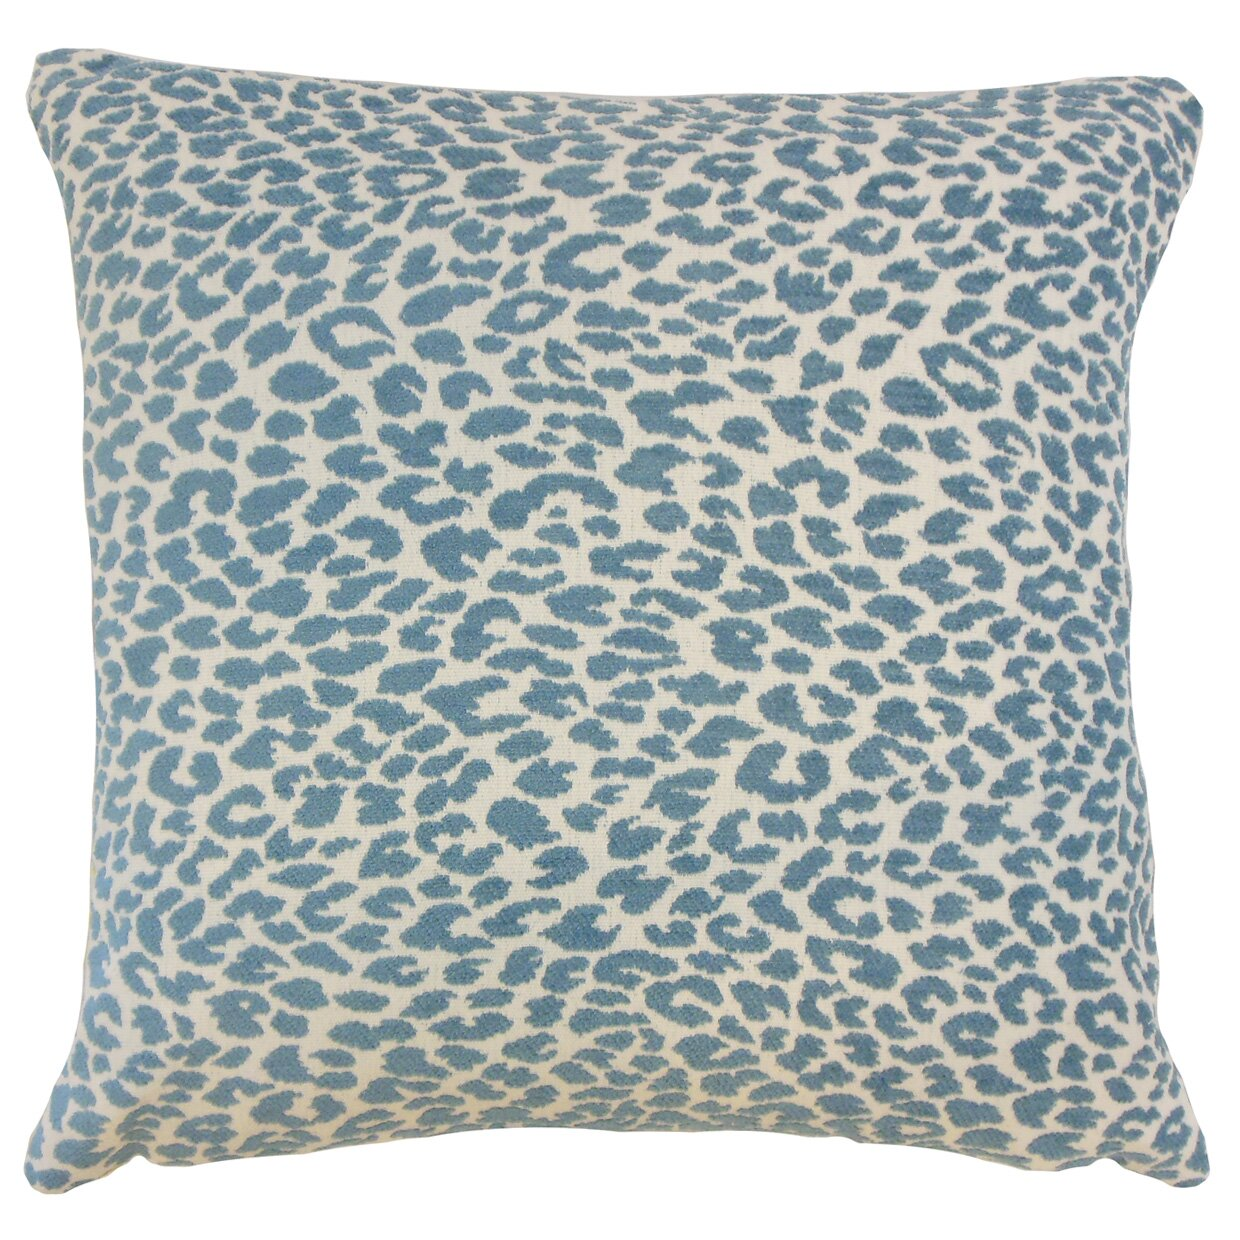 Animal Print Pillows For Couch : The Pillow Collection Pesach Animal Print Throw Pillow & Reviews Wayfair